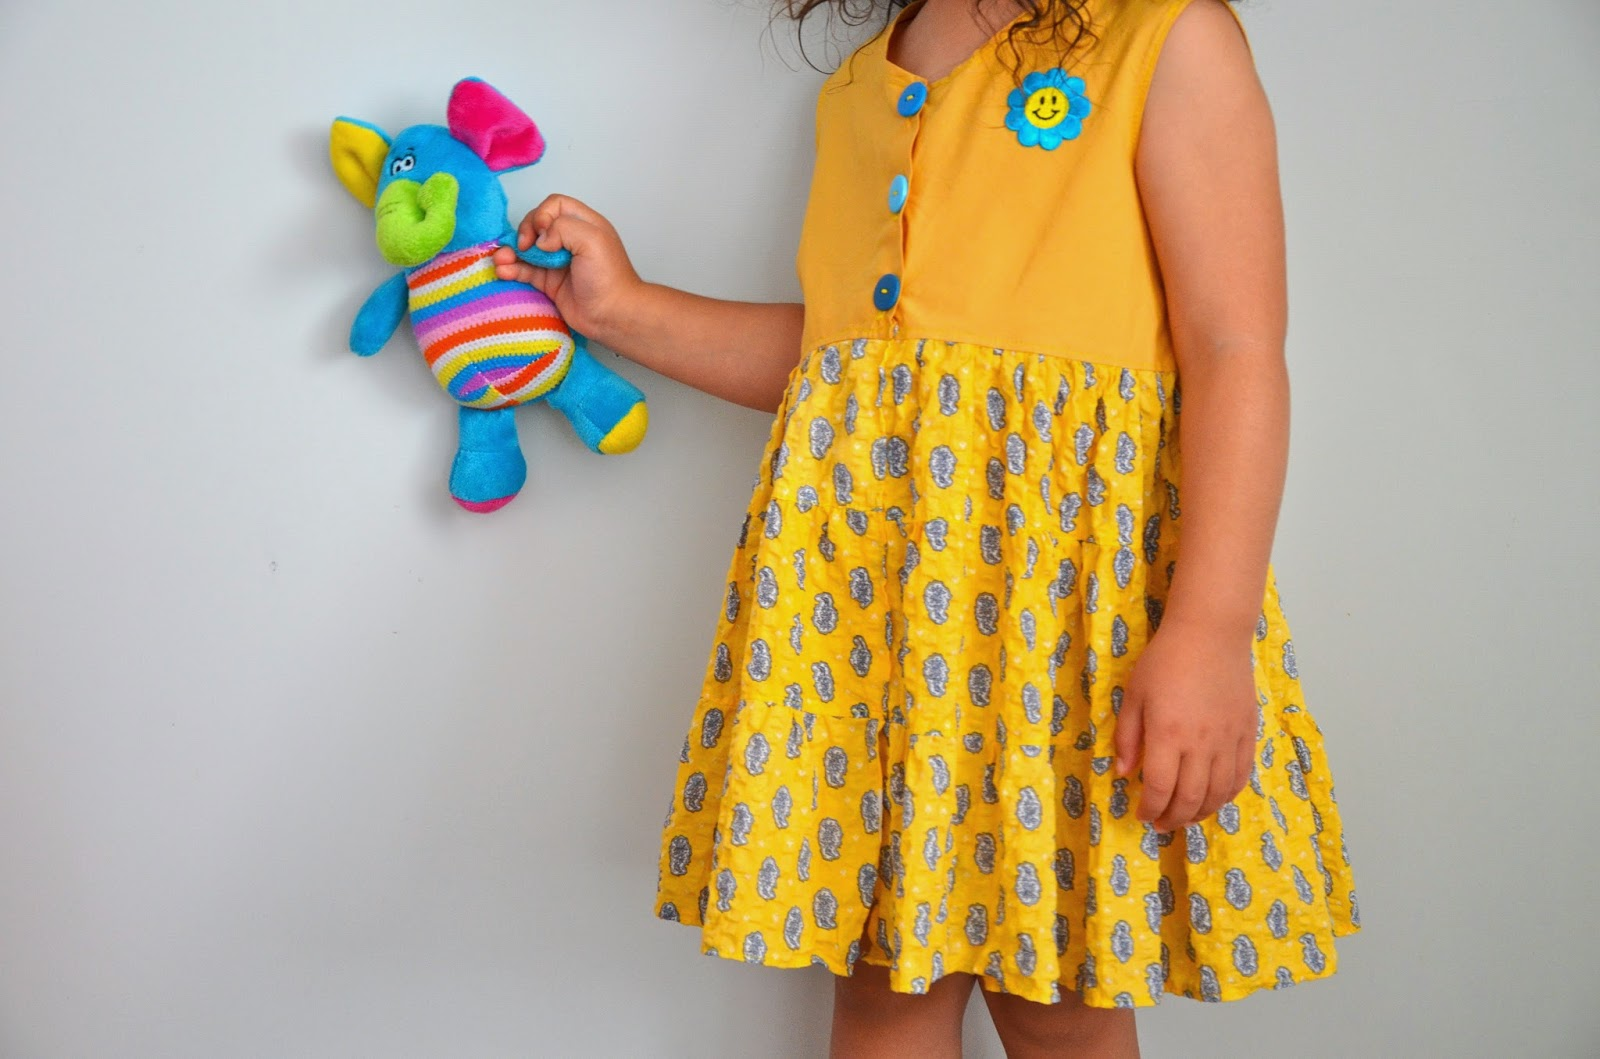 A twirly dress for a girl